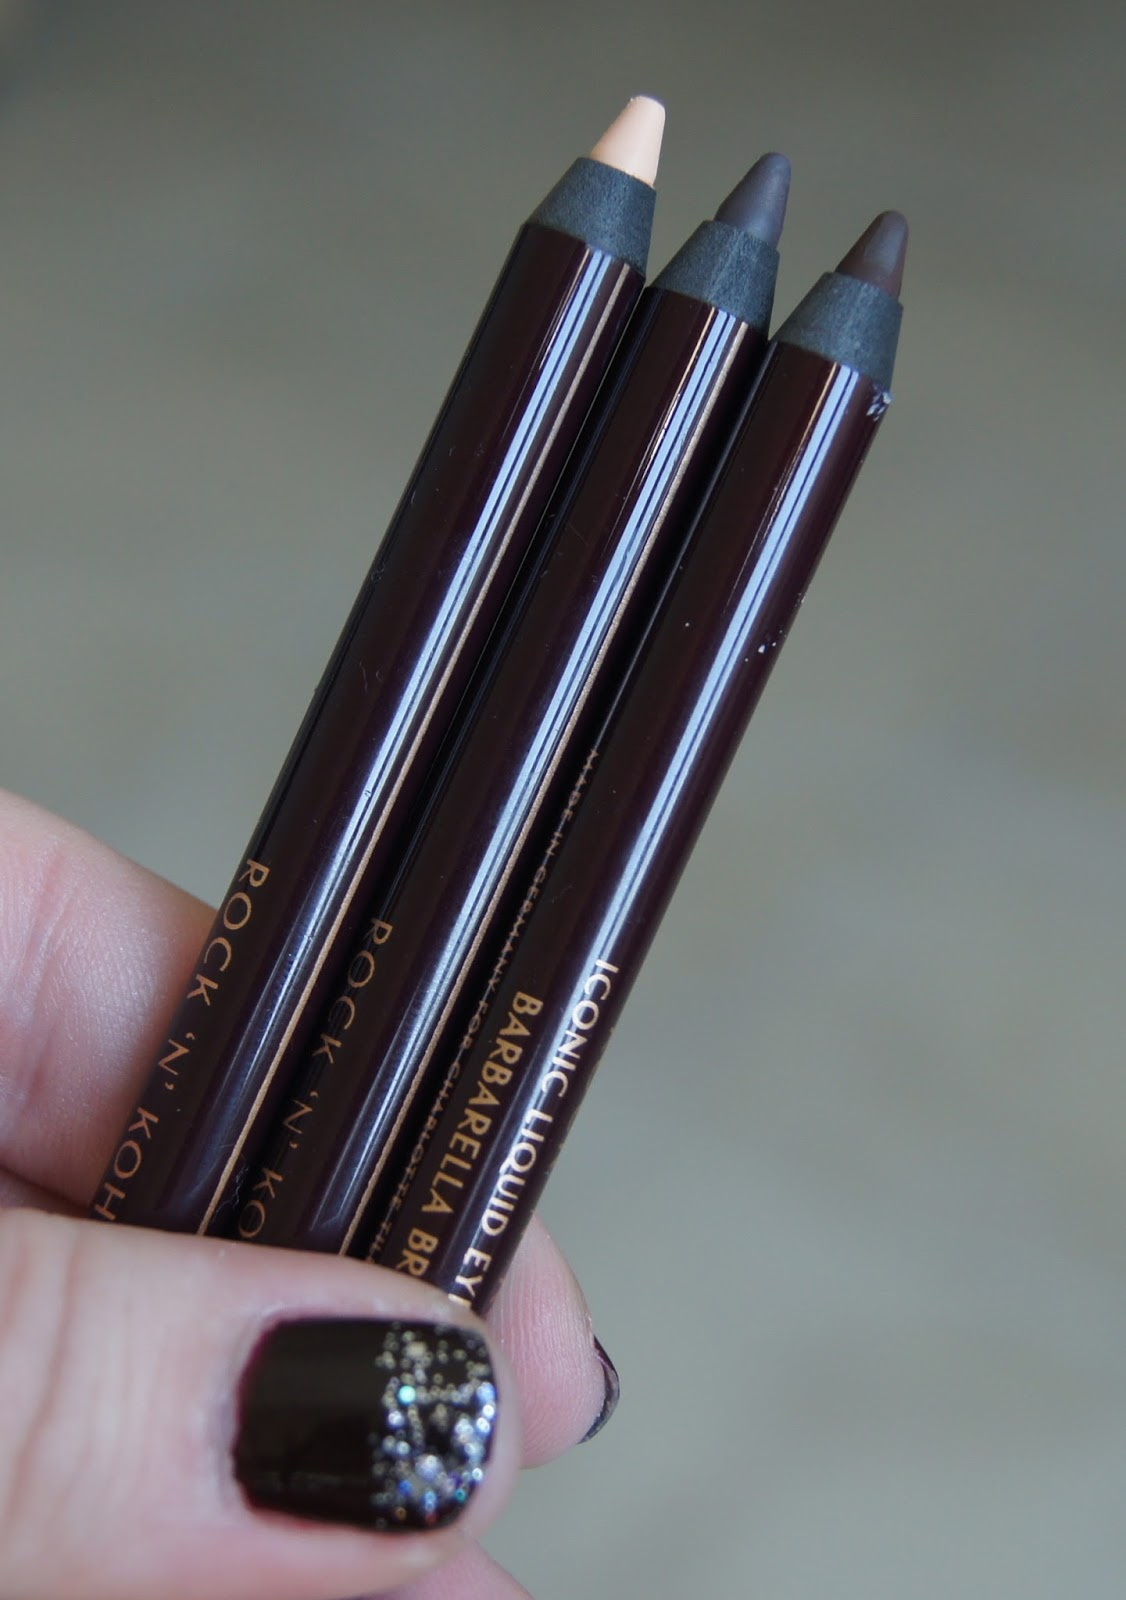 Charlotte Tilbury Rock n Kohl iconic liquid eye pencil review